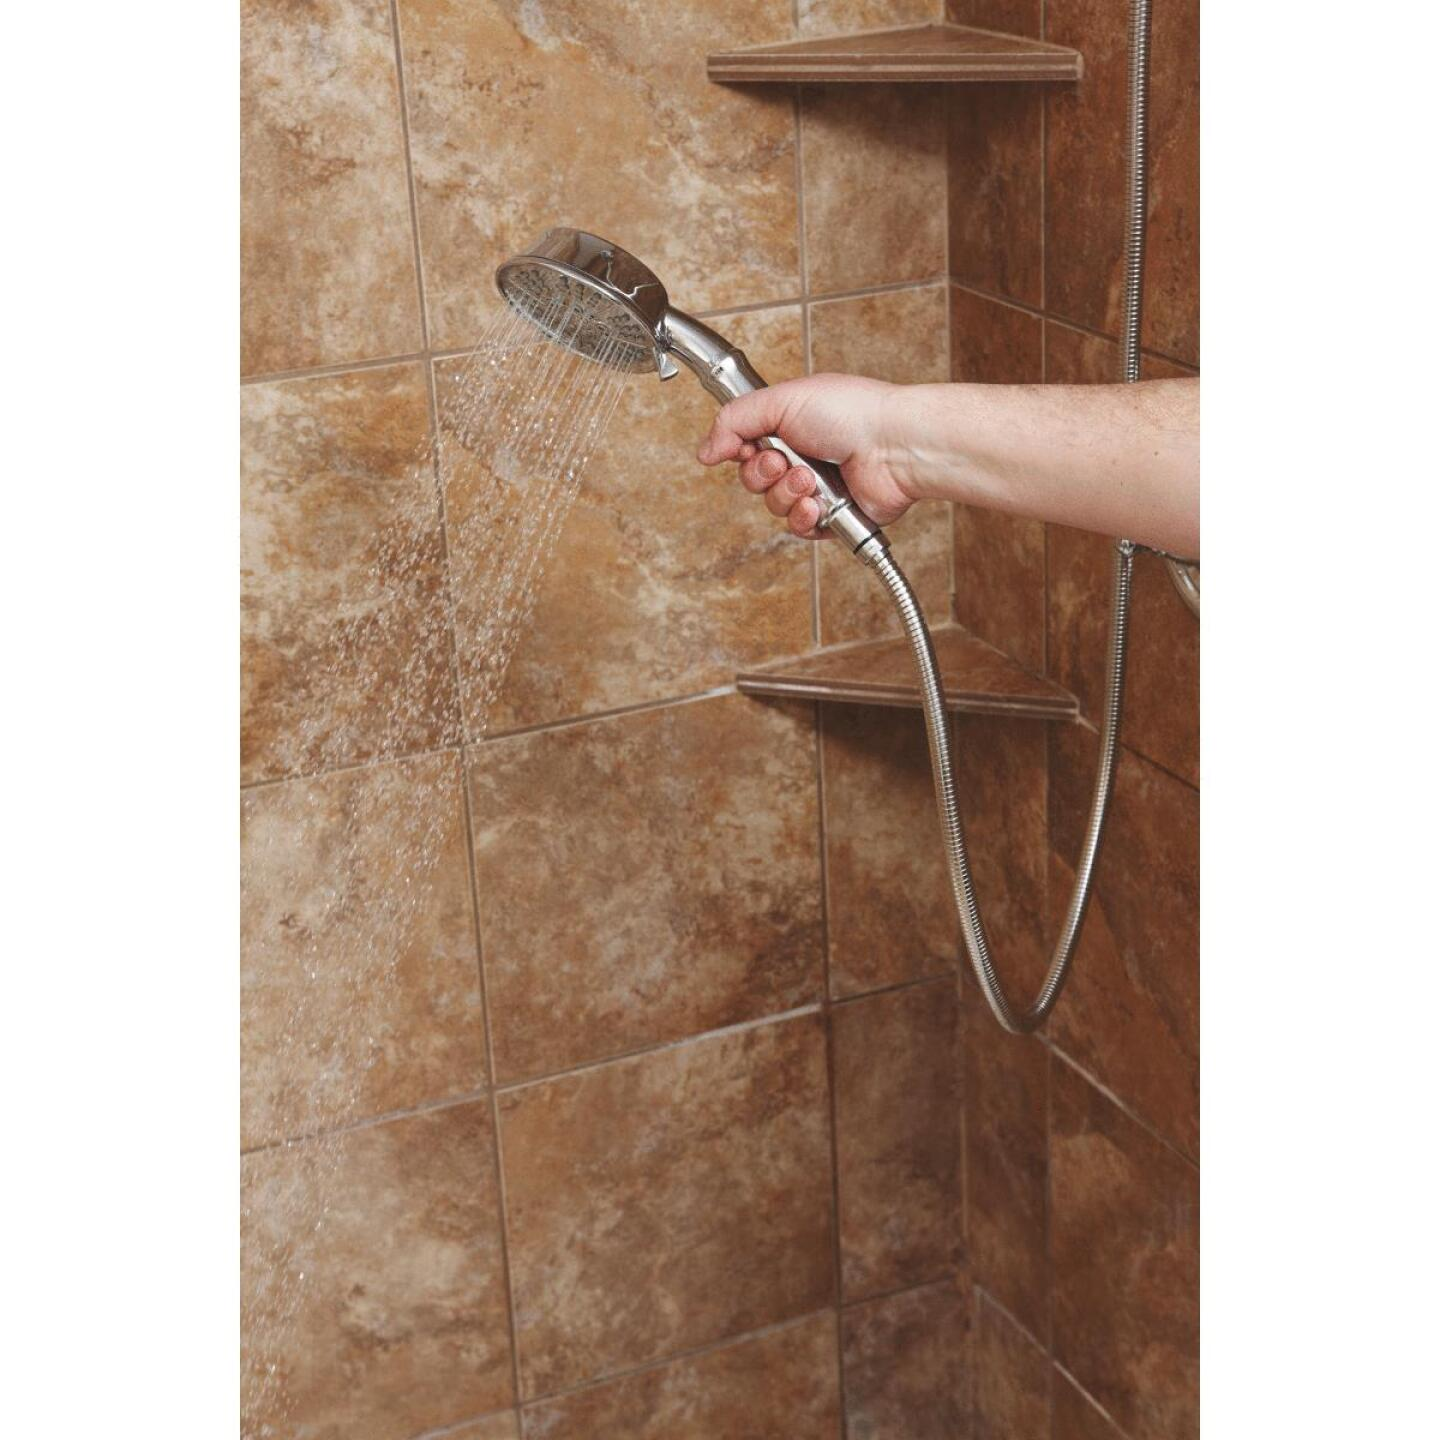 Home Impressions 5-Spray 1.75 GPM Combo Hand-Held Shower & Showerhead, Chrome Image 4